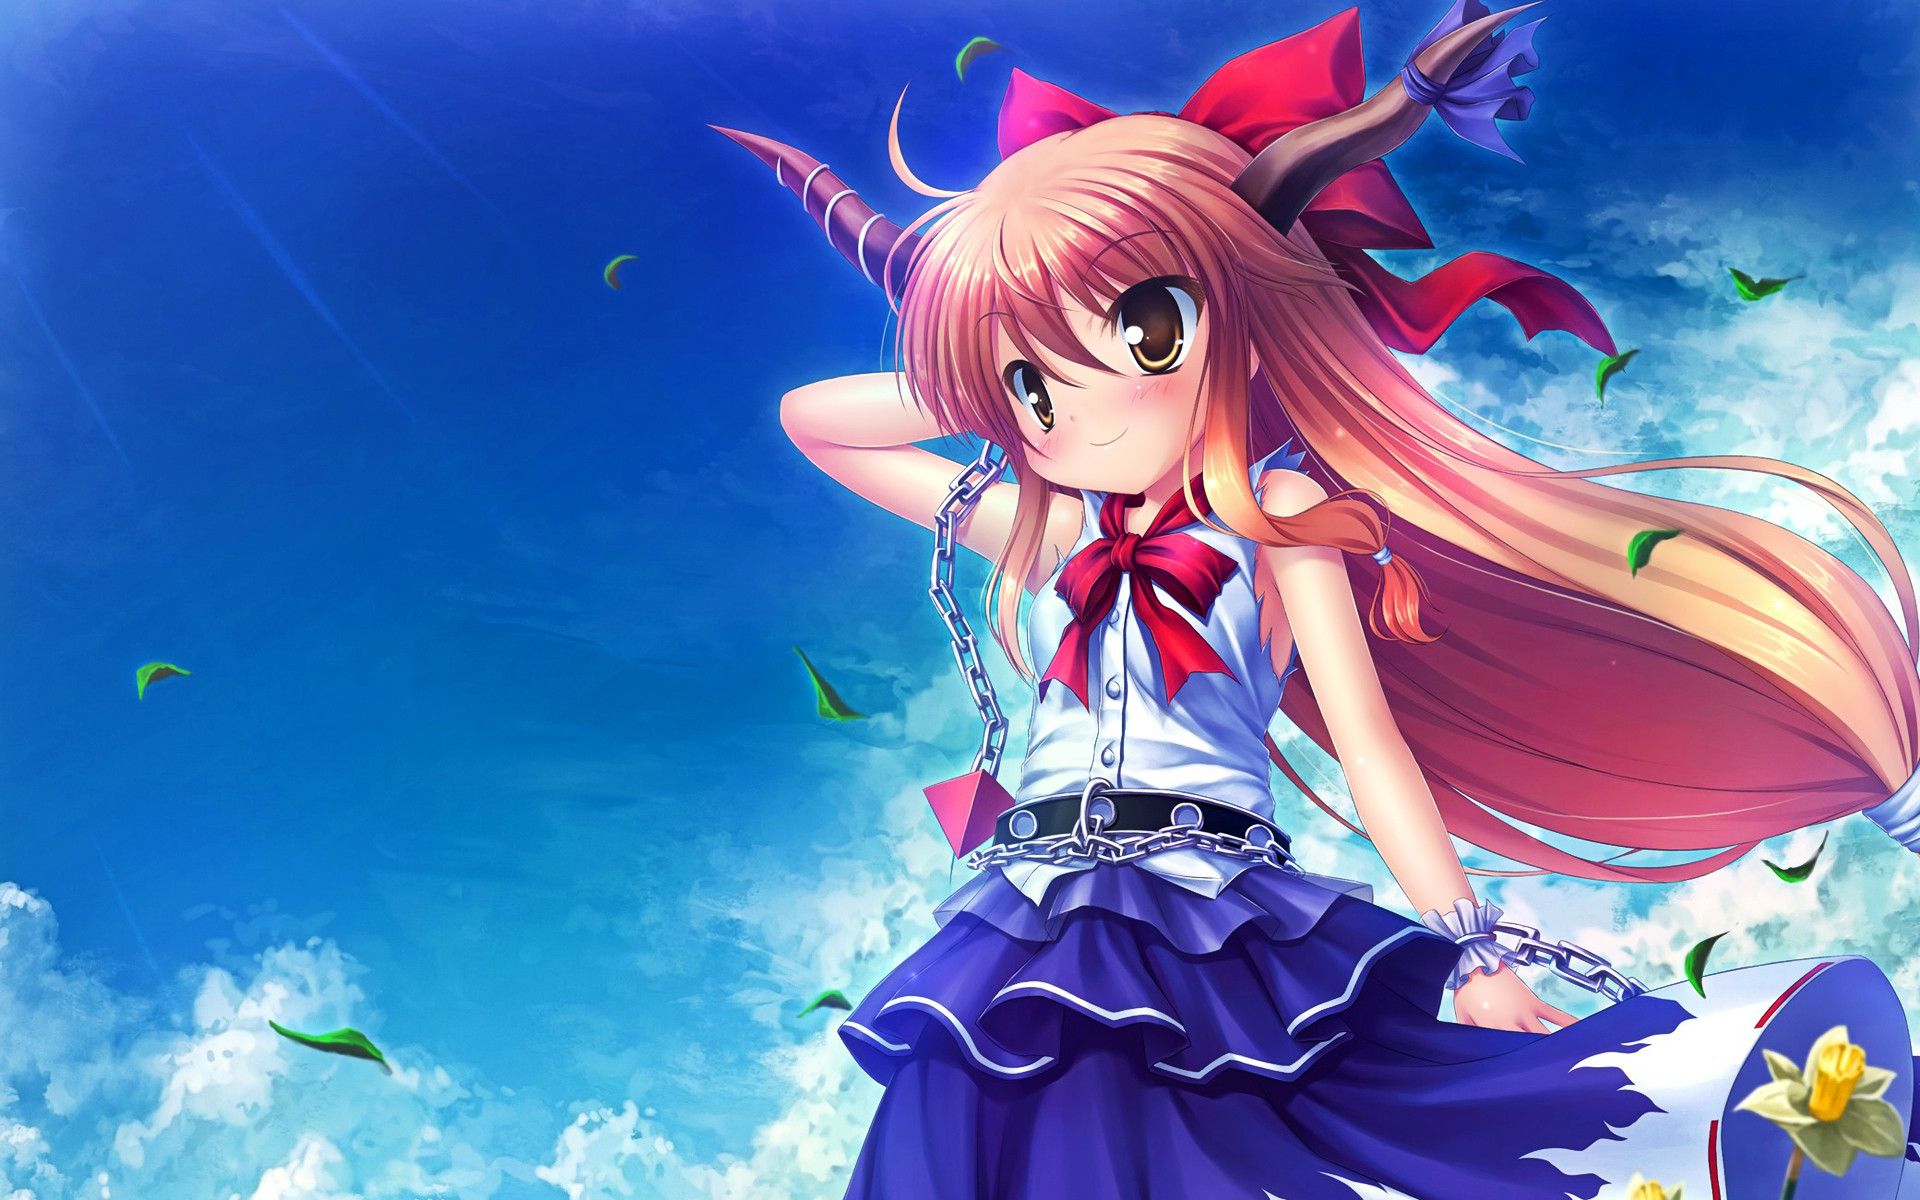 Cute Anime Wallpapers HD 1920x1200